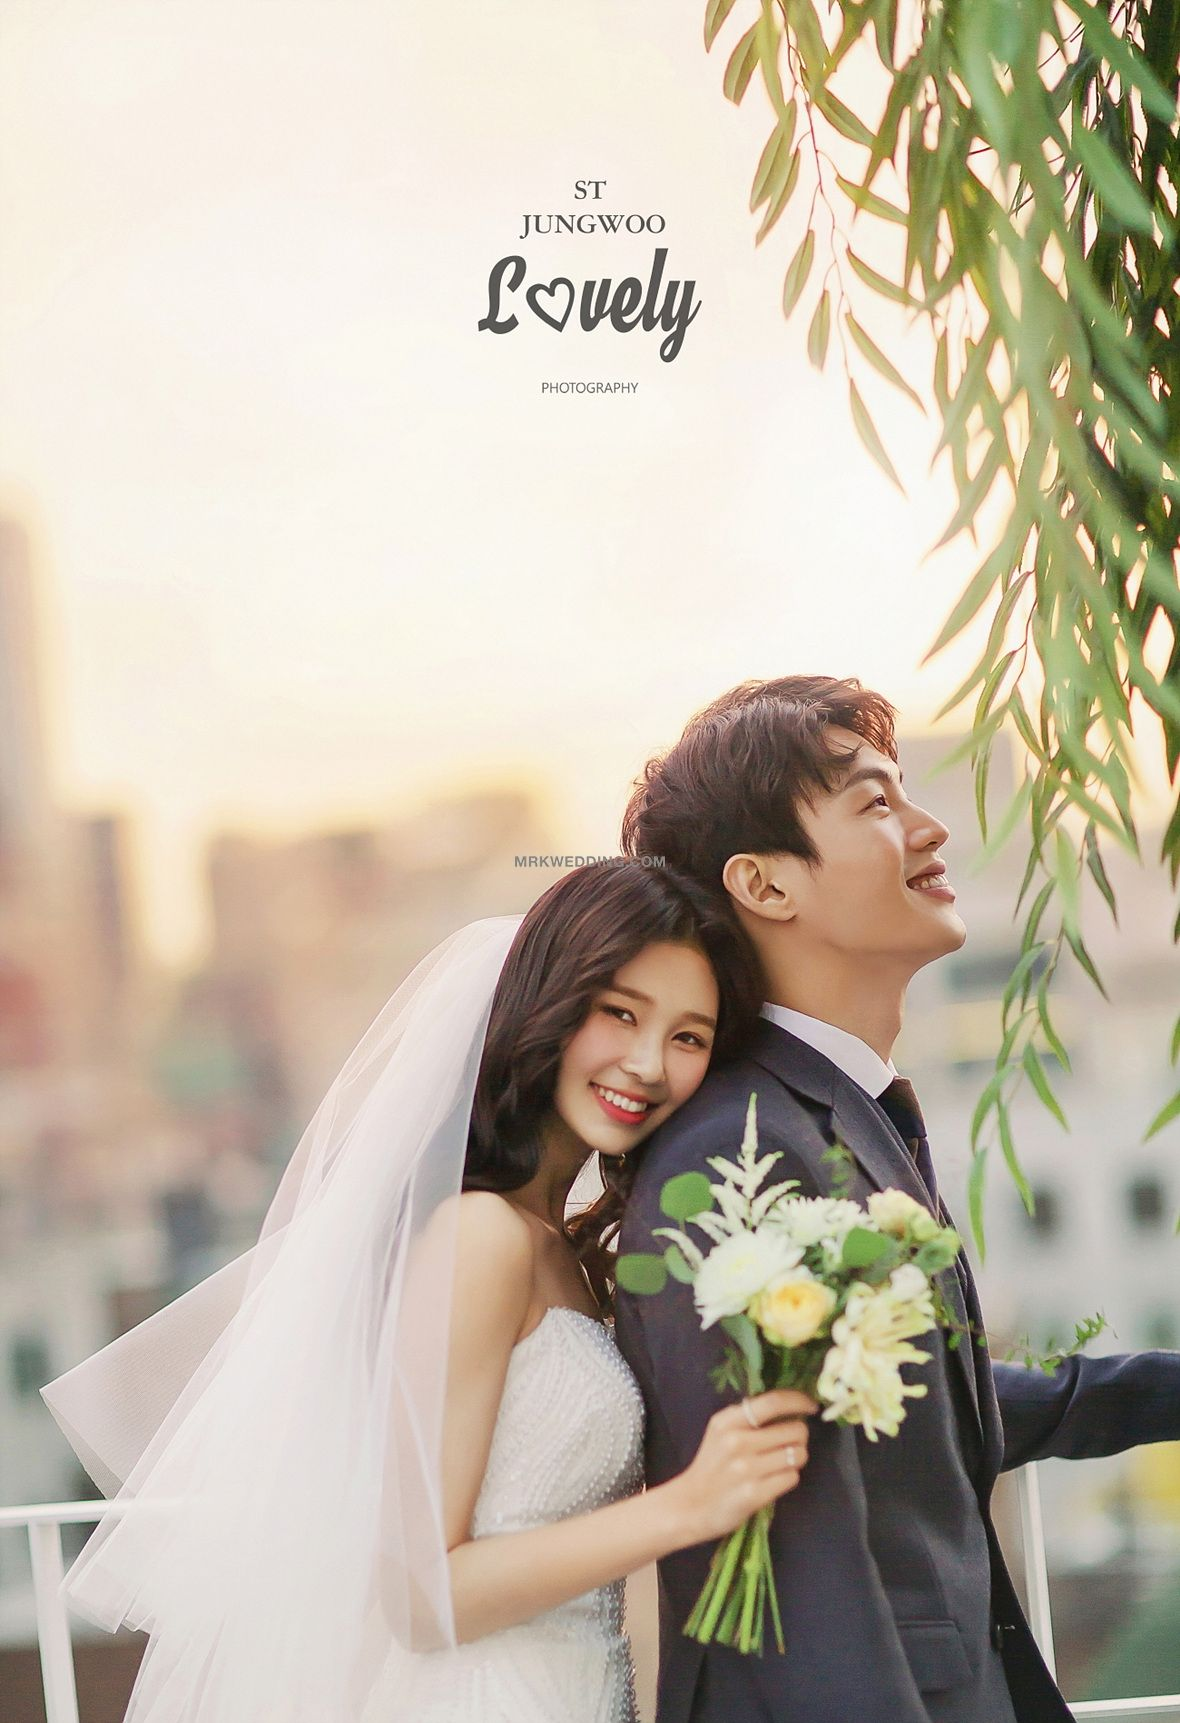 Korea Pre Wedding Lovely St 2019 2020 Wedding Package Mr K Korea Pre Wedding Everyday Something New And Wedding Photoshoot Wedding Photos Wedding Poses